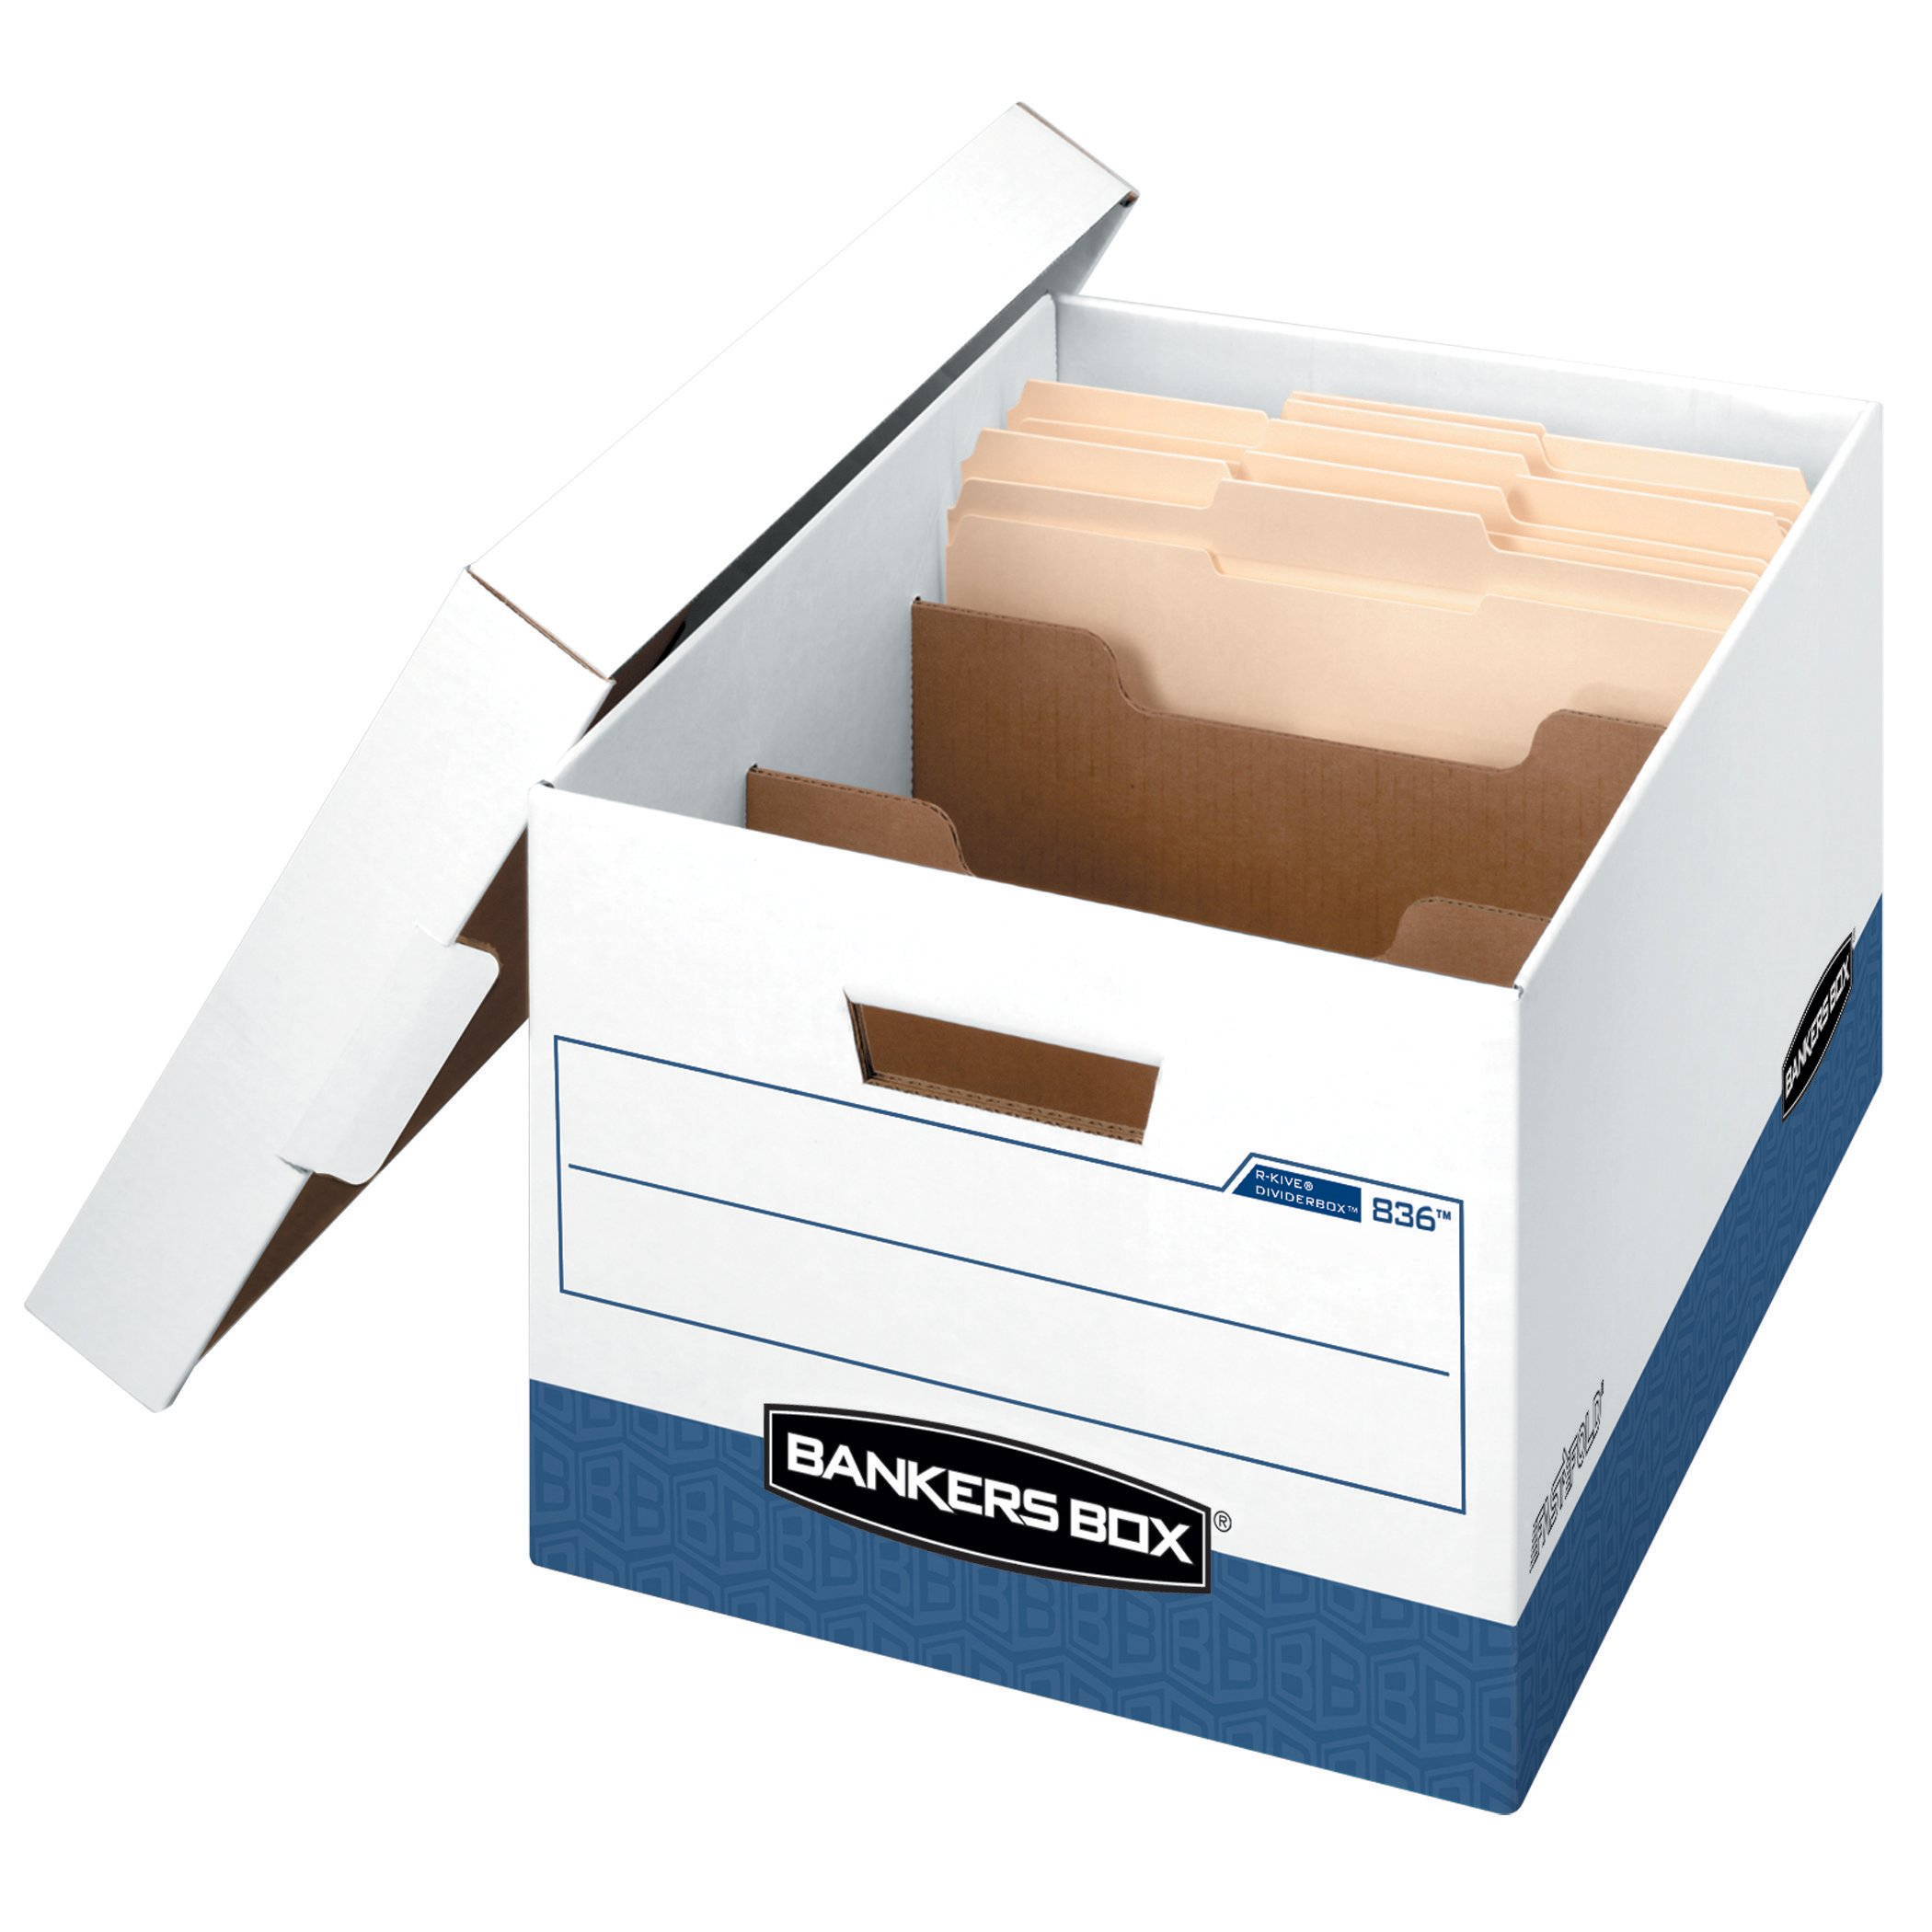 Bankers Box R-Kive Dividerbox Heavy-Duty Storage Boxes, Letter/Legal, 12 Pack (0083601)